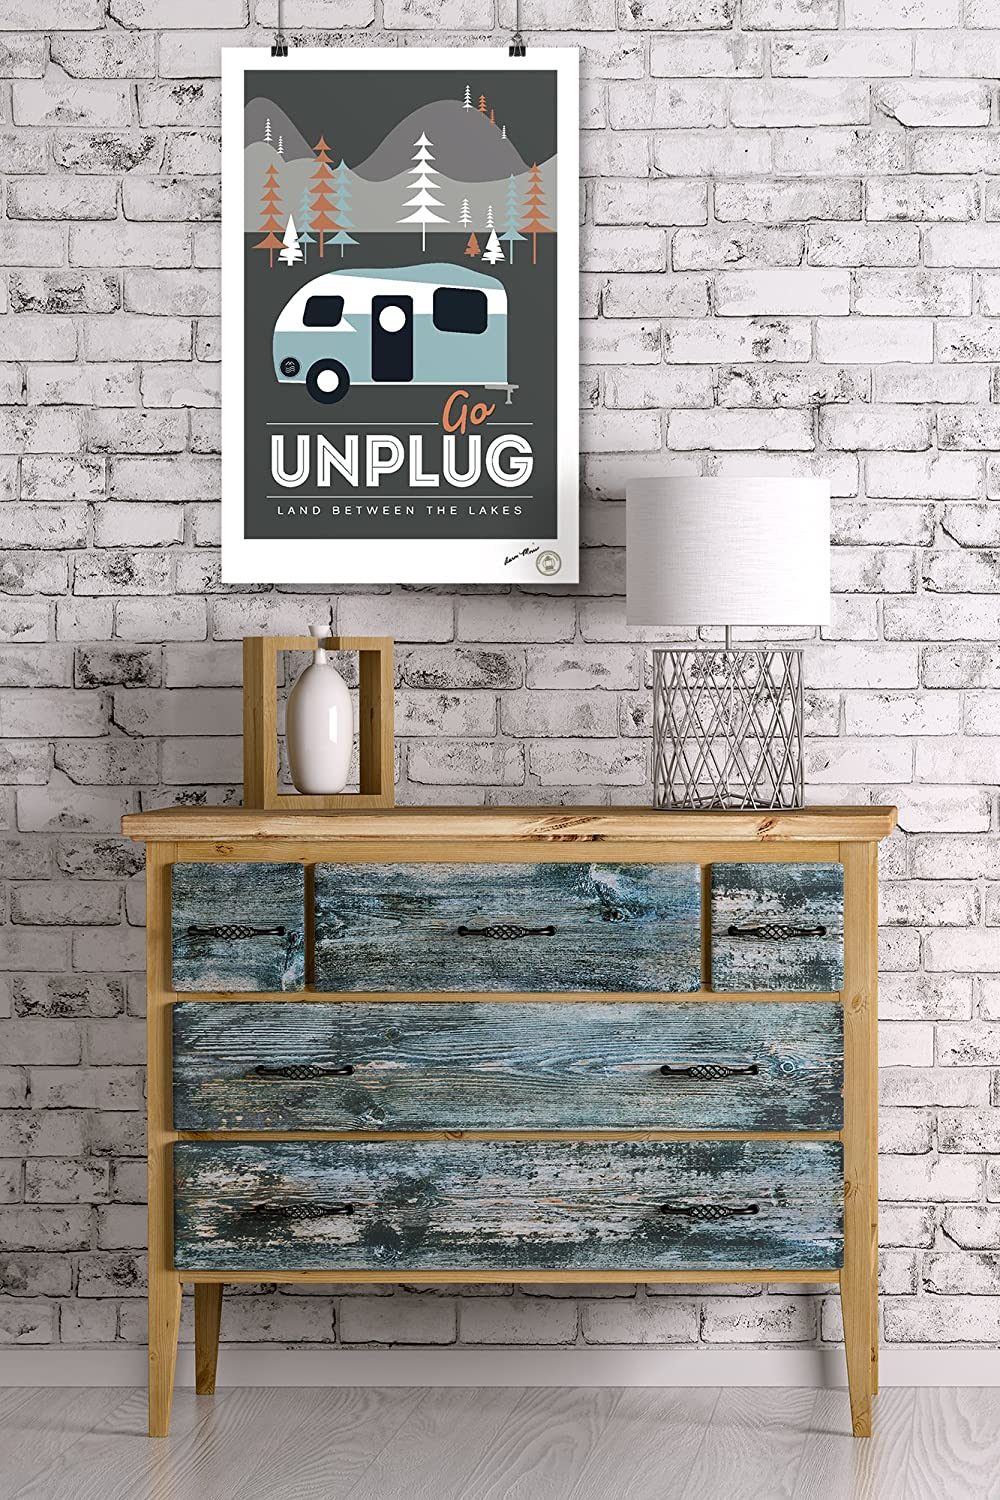 Retro Camper - Vector Style 24x36 Giclee Gallery Print, Wall Decor Travel Poster Go Unplug Land Between the Lakes